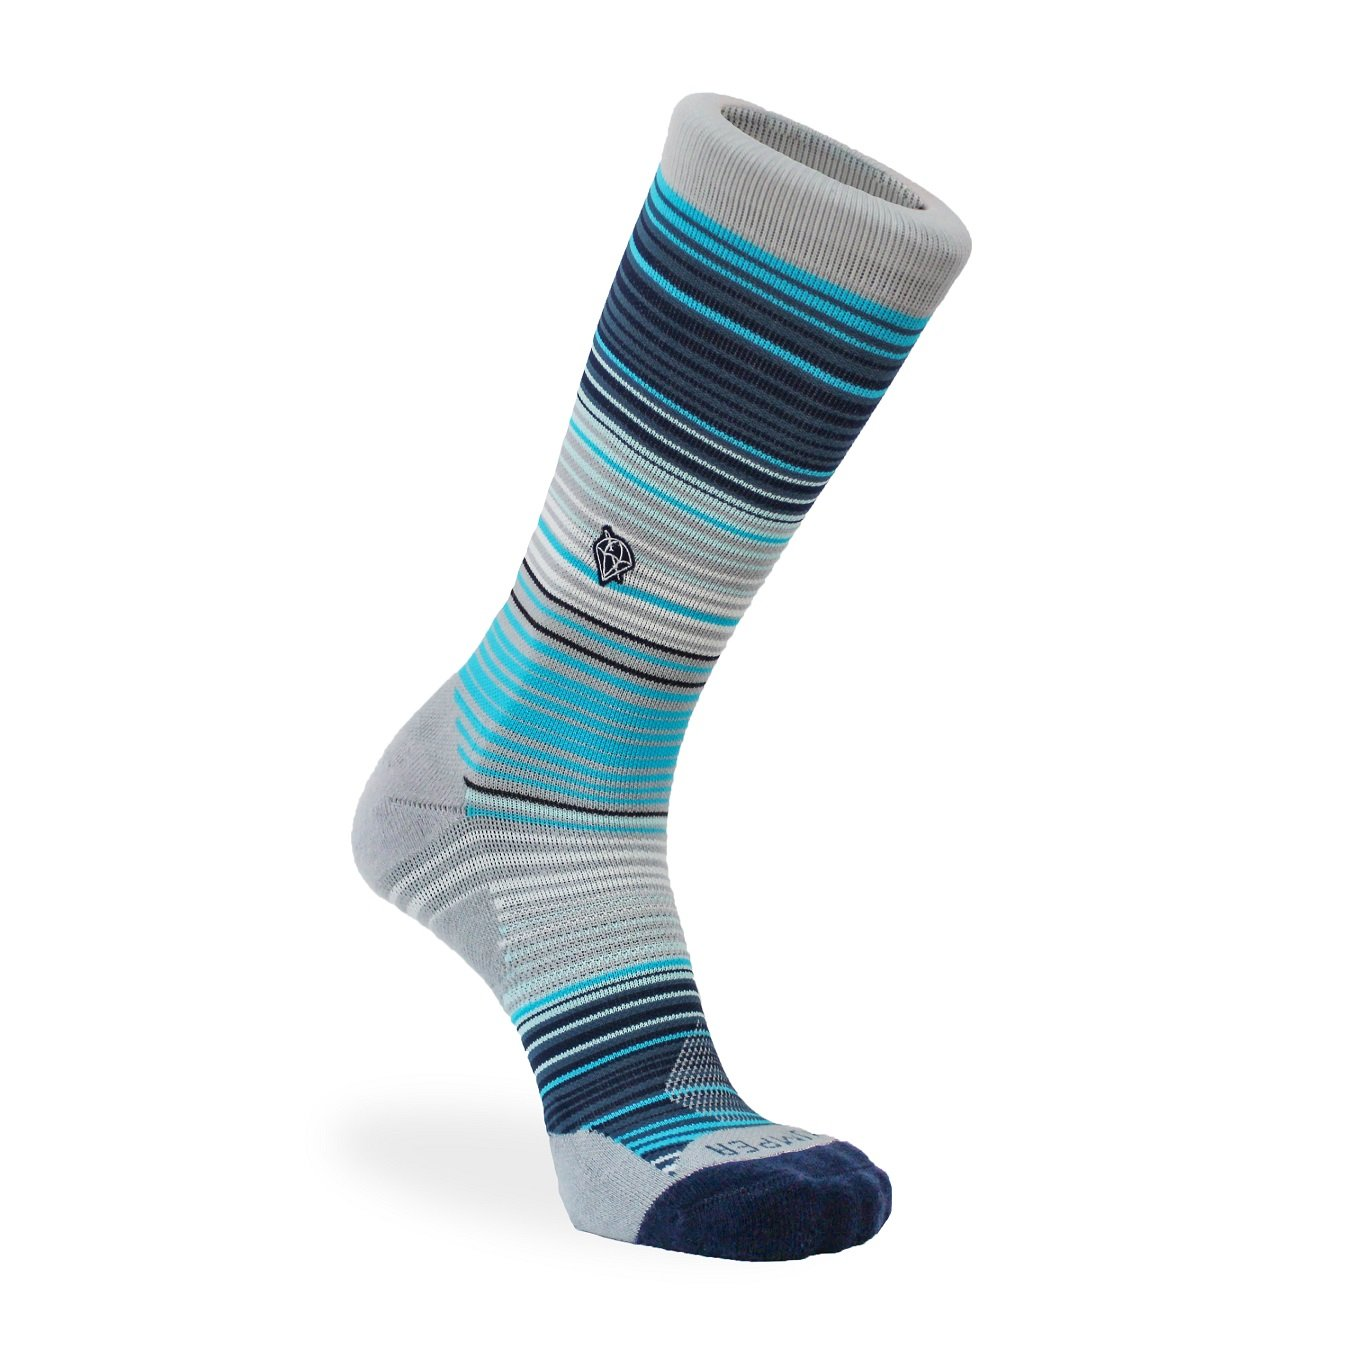 Socks - 1-505 Performance Sock